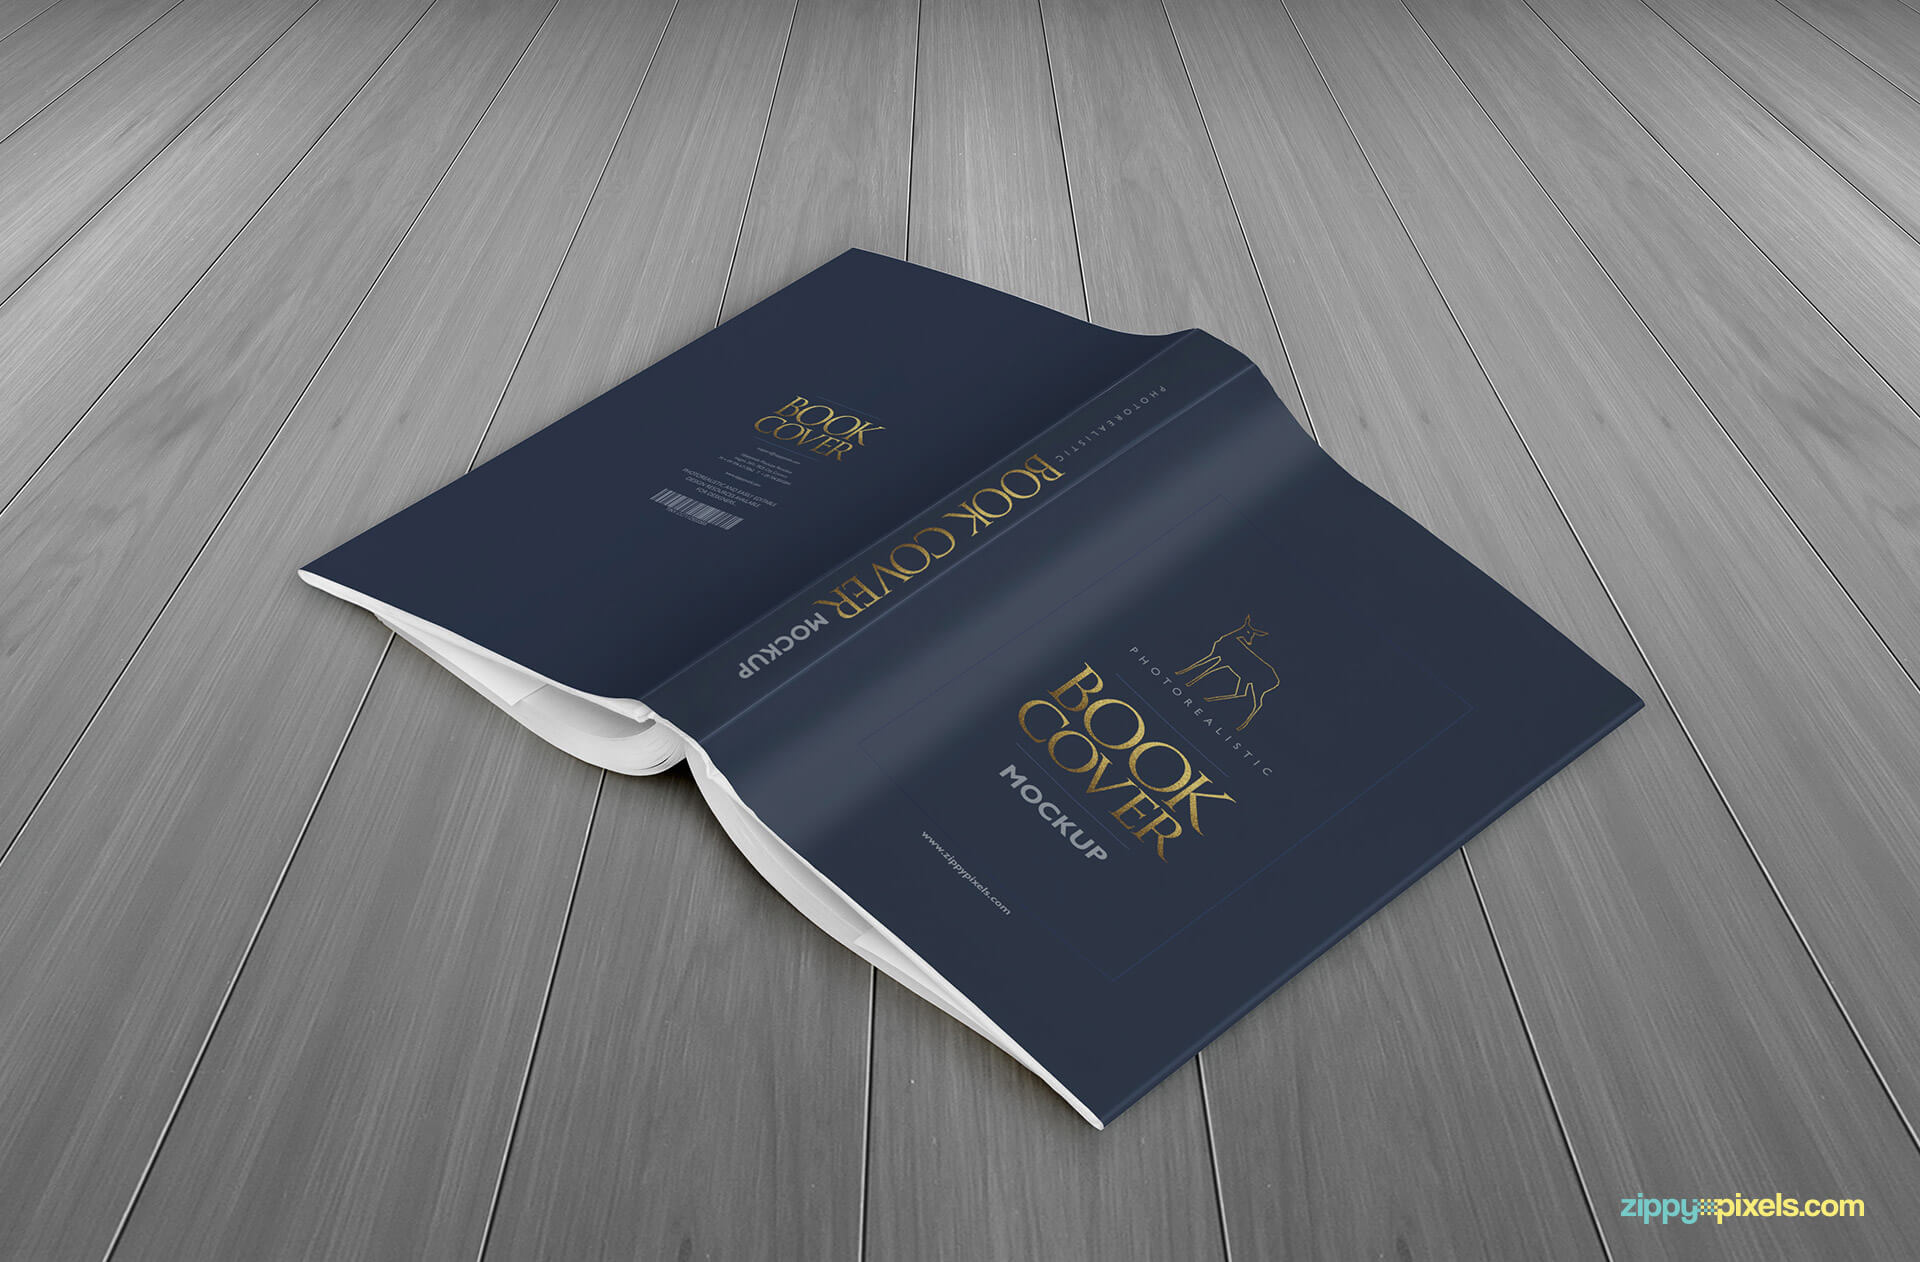 Hardcover Book Cover Template ~ Realistic hardcover book mockups zippypixels